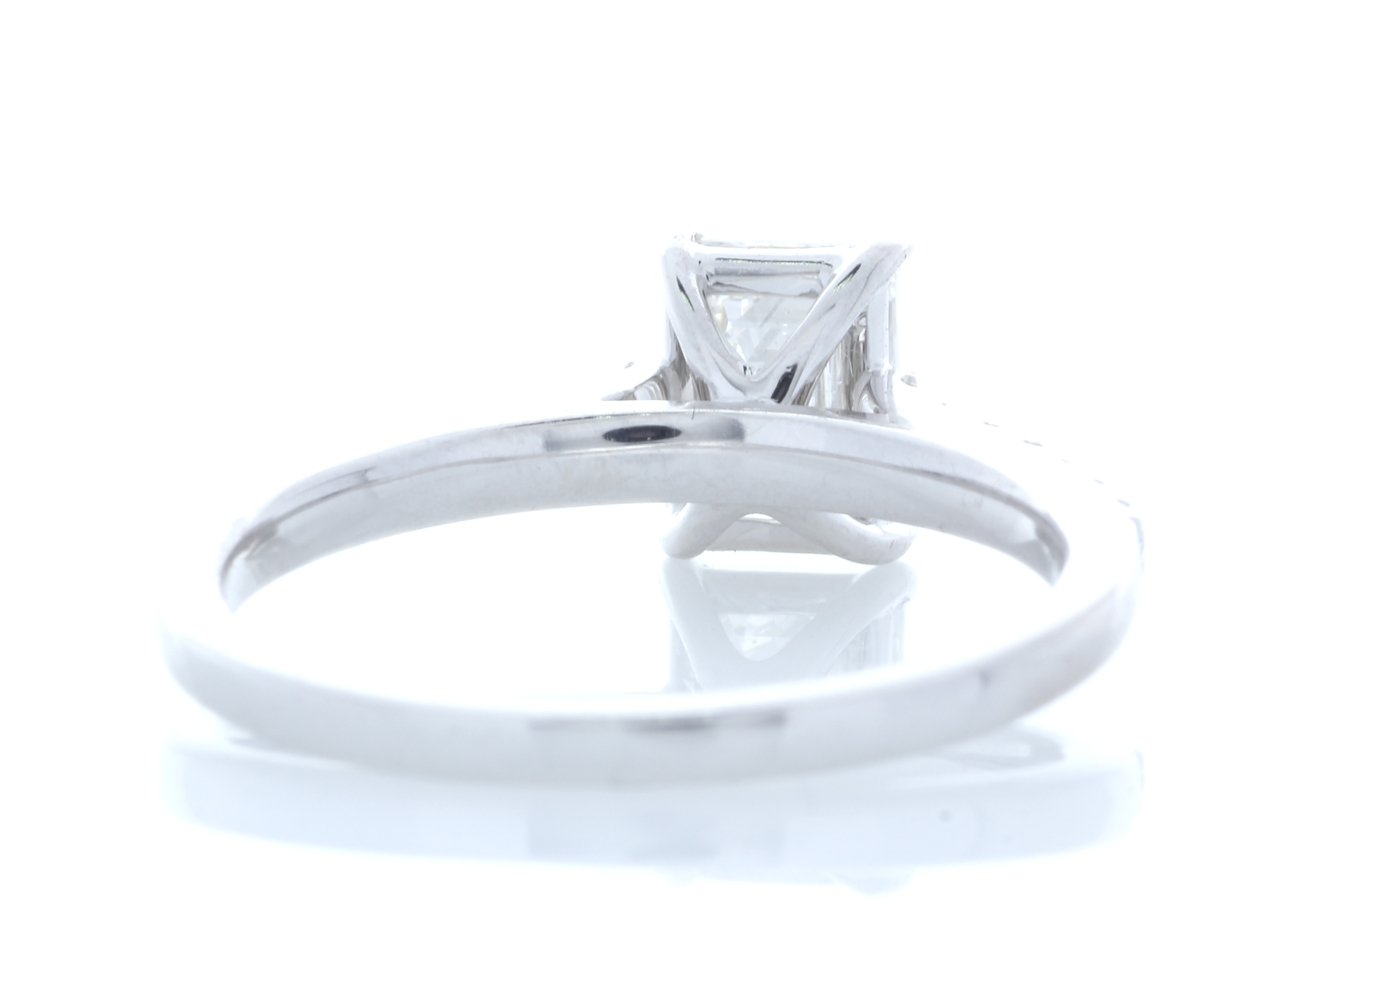 18ct White Gold Stone Set Shoulders Diamond Ring 1.19 Carats - Image 3 of 5